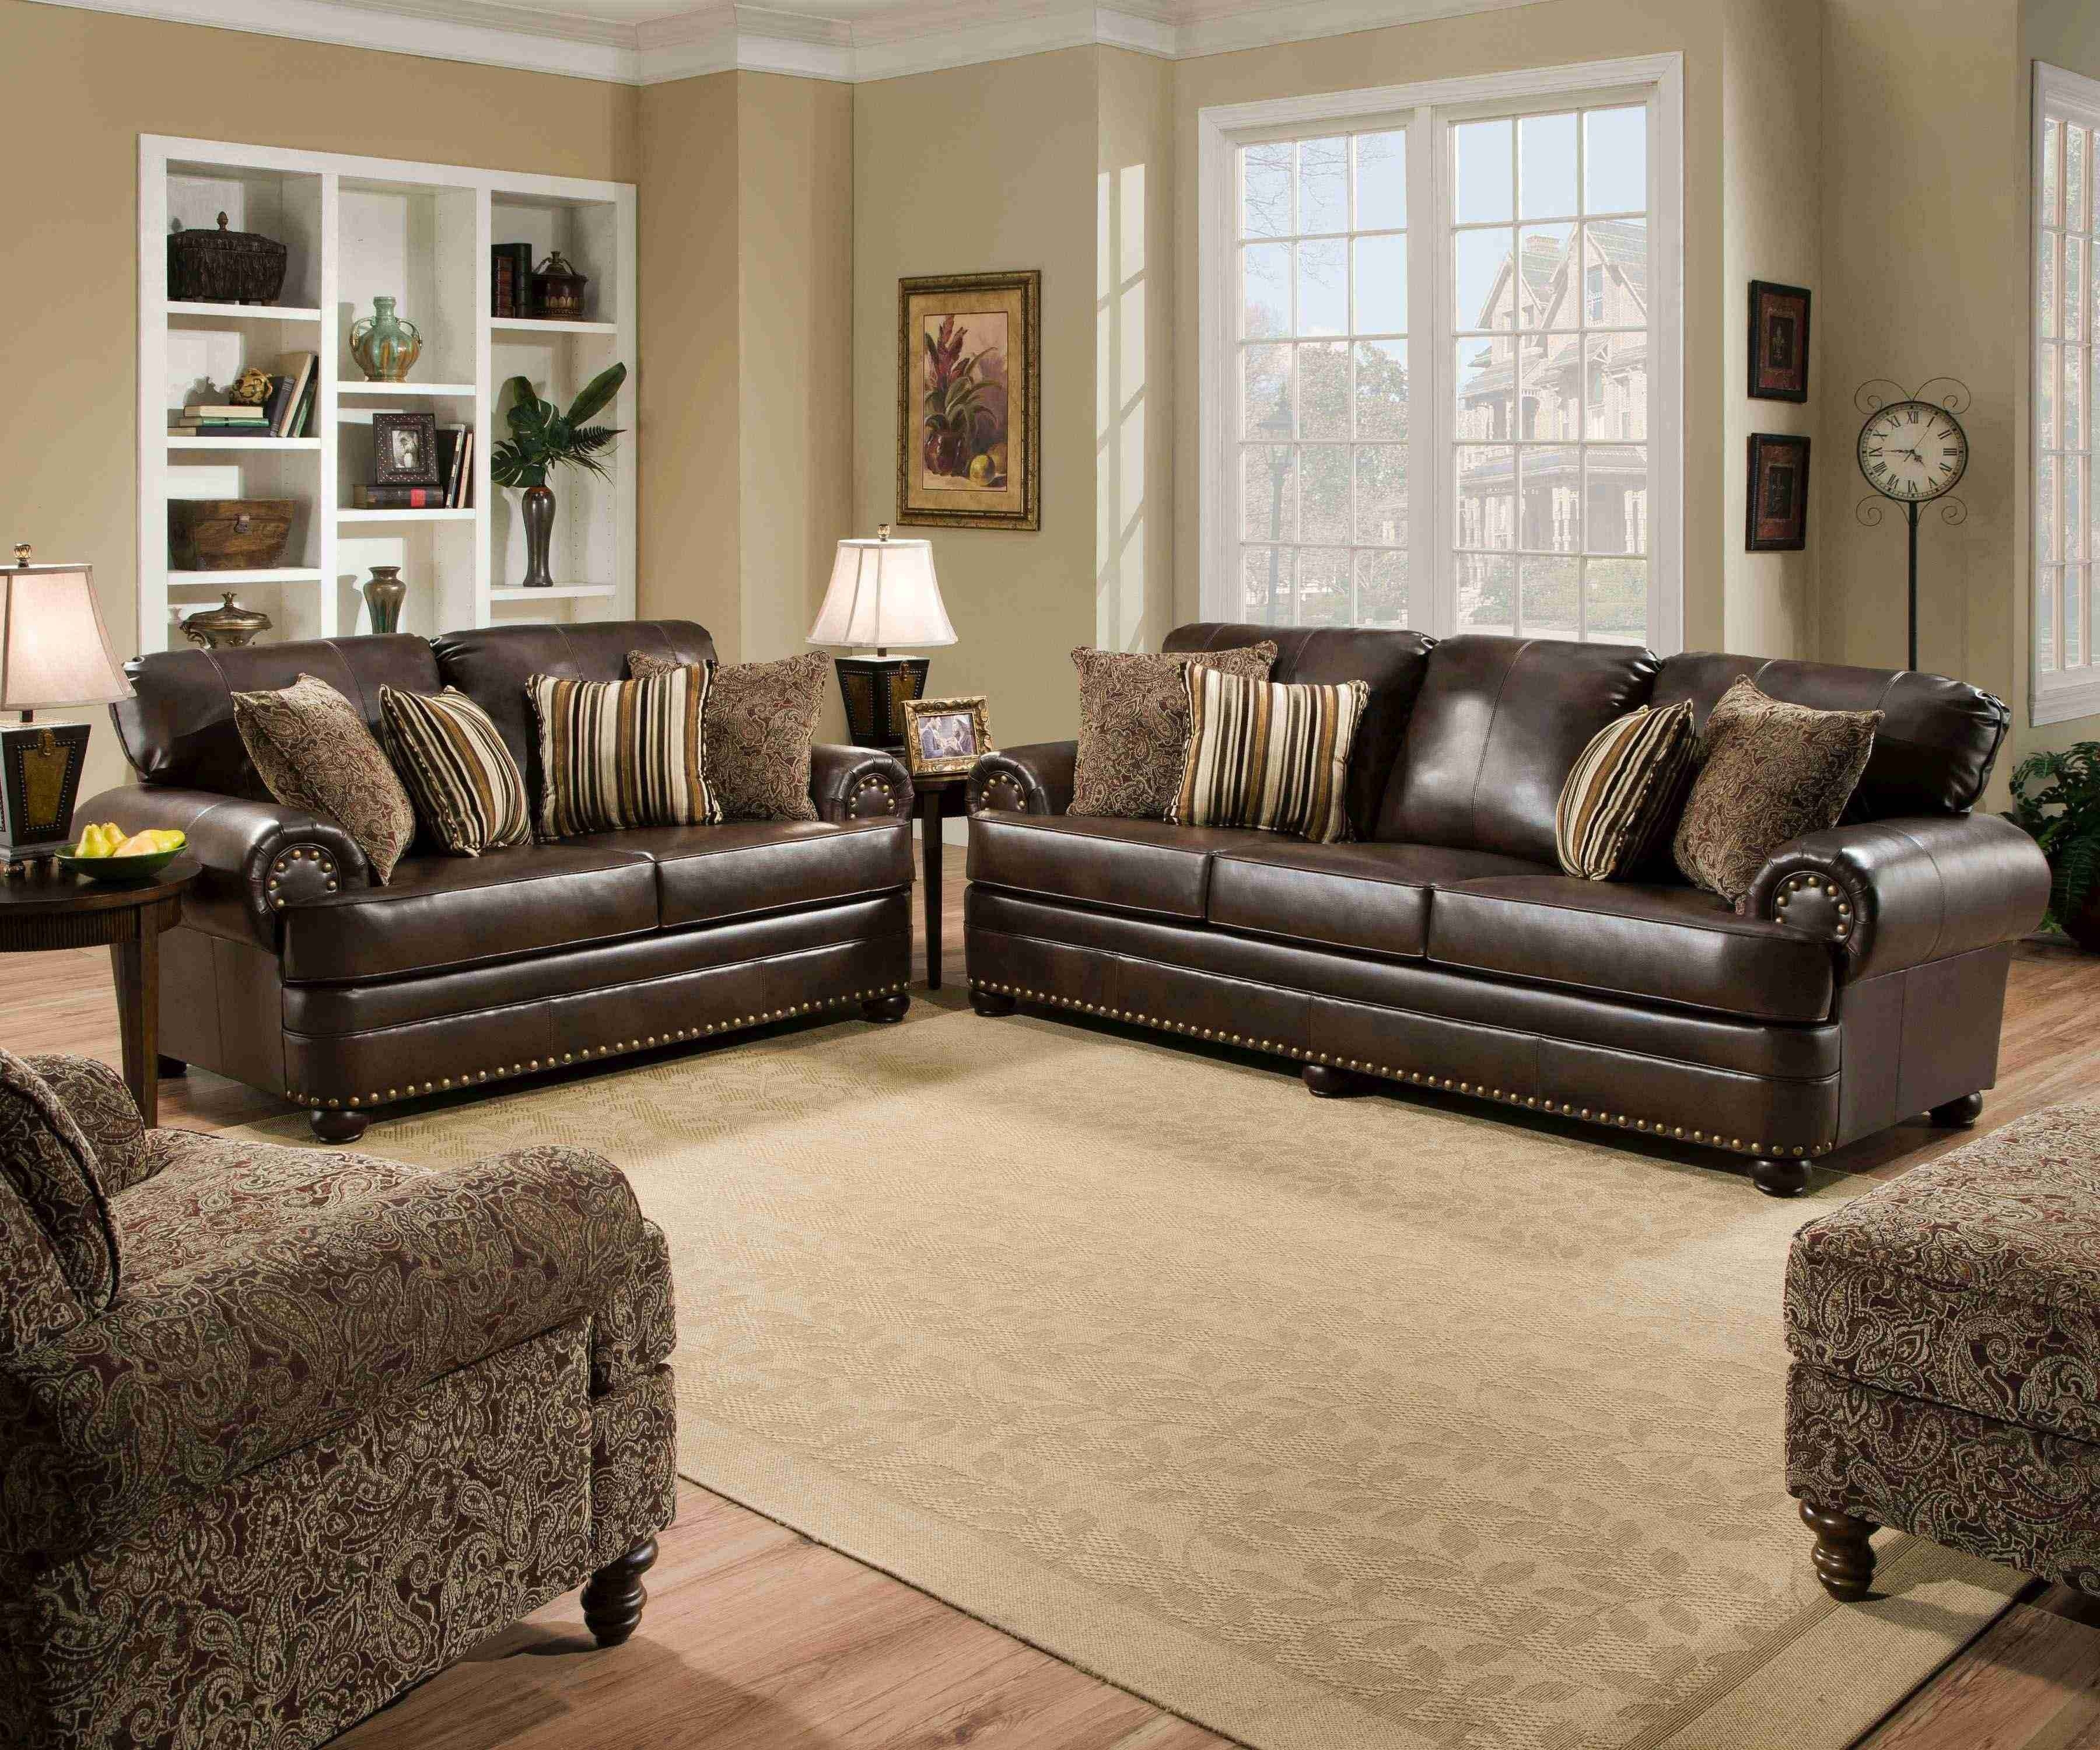 Simmons Leather Sofa And Loveseat - Radiovannes pertaining to Simmons Leather Sofas (Image 7 of 15)